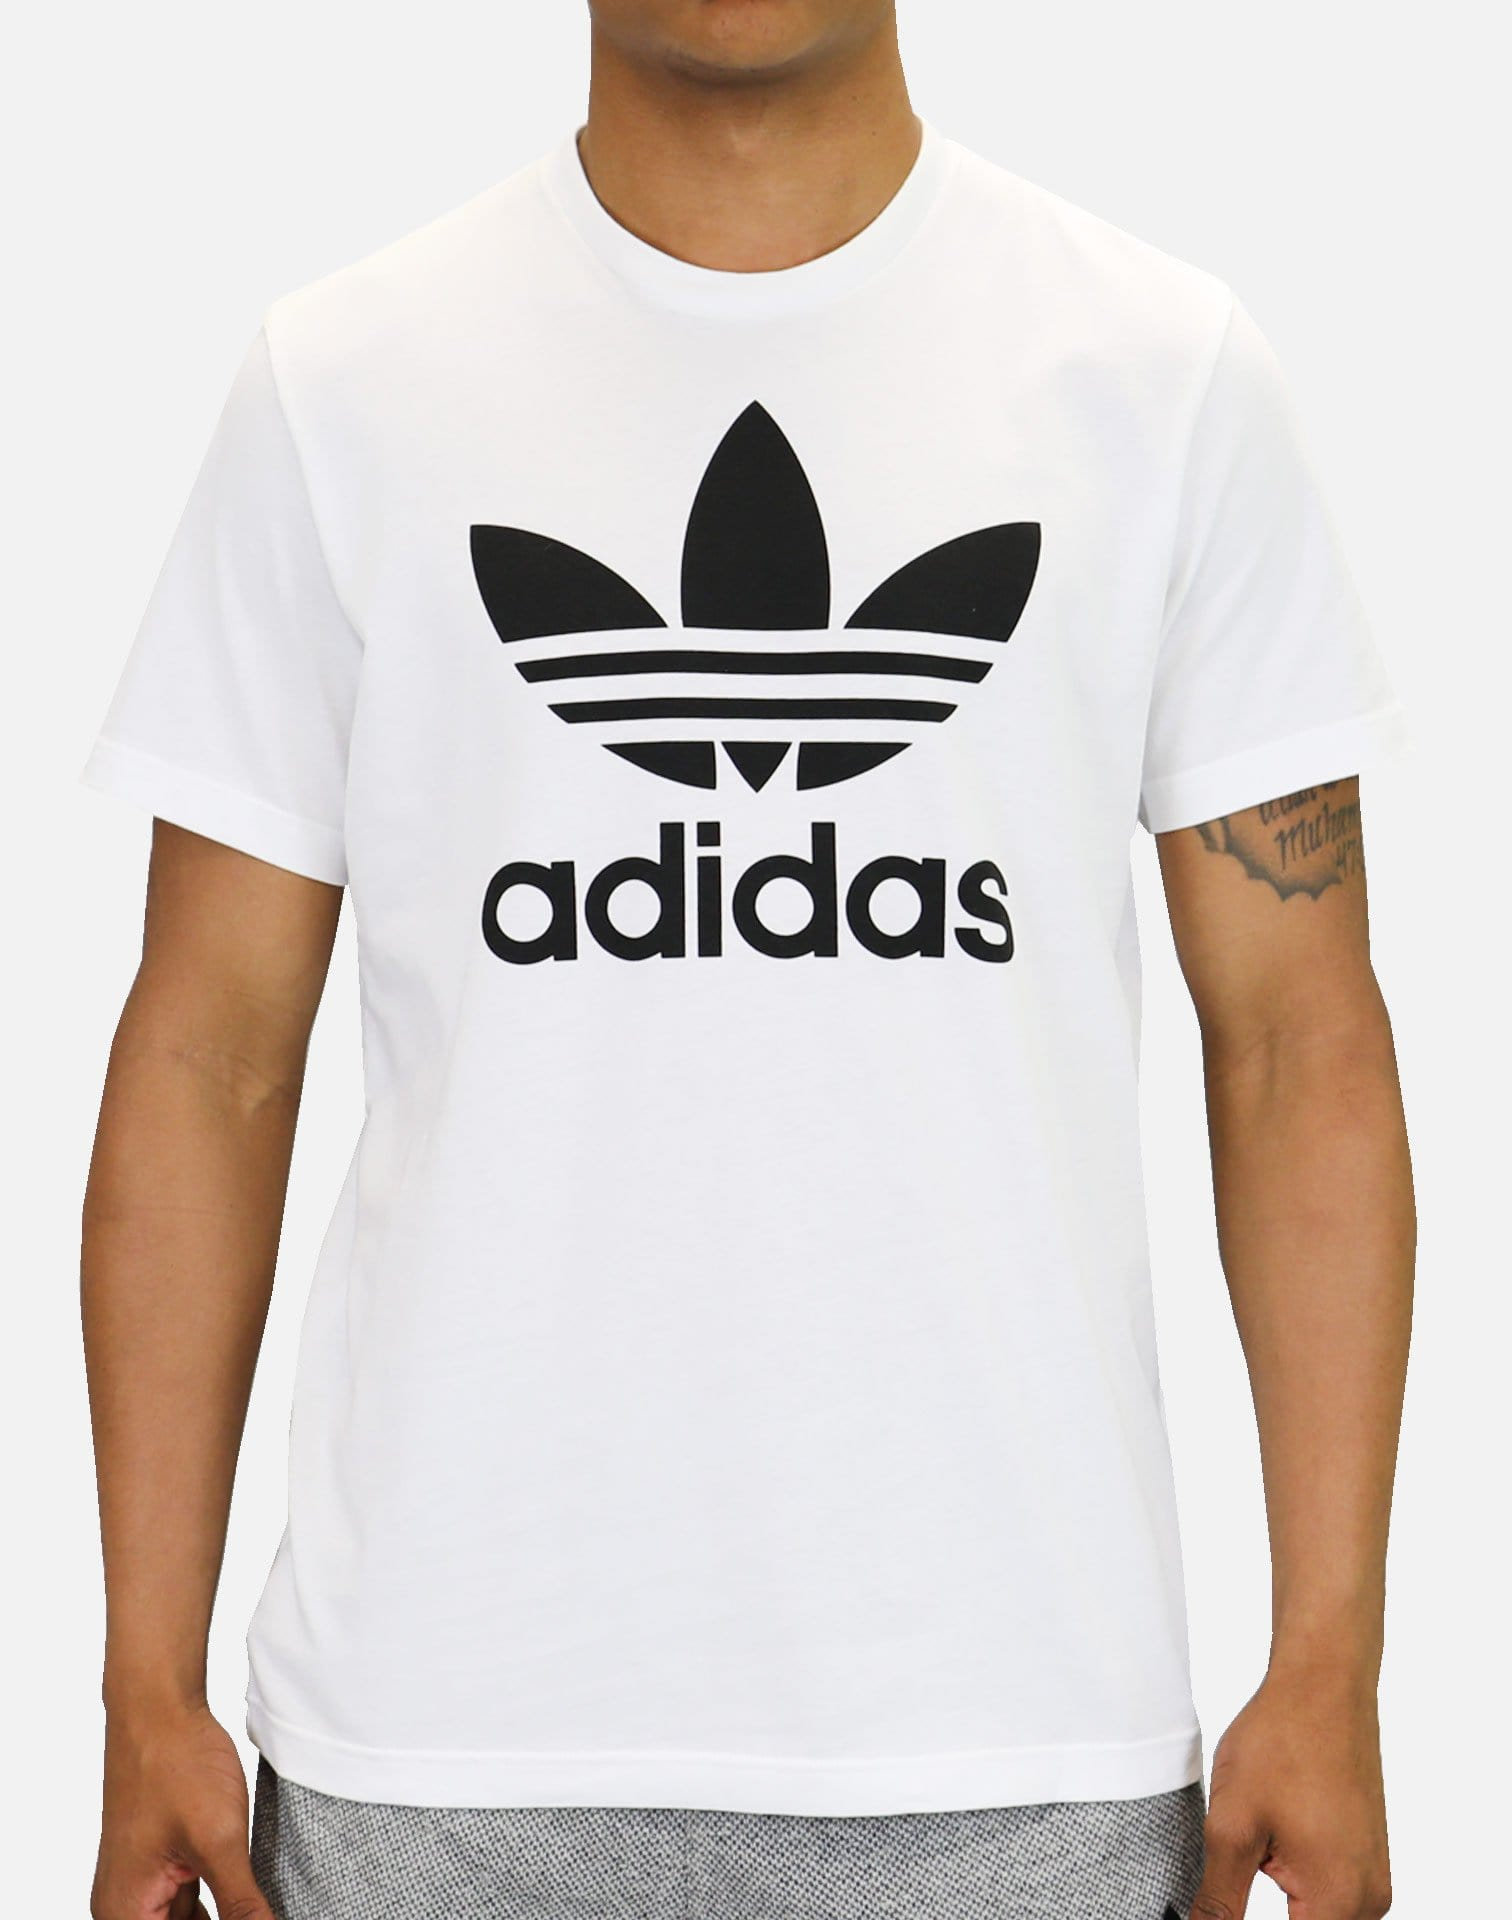 adidas Originals Trefoil Tee (White/Black)